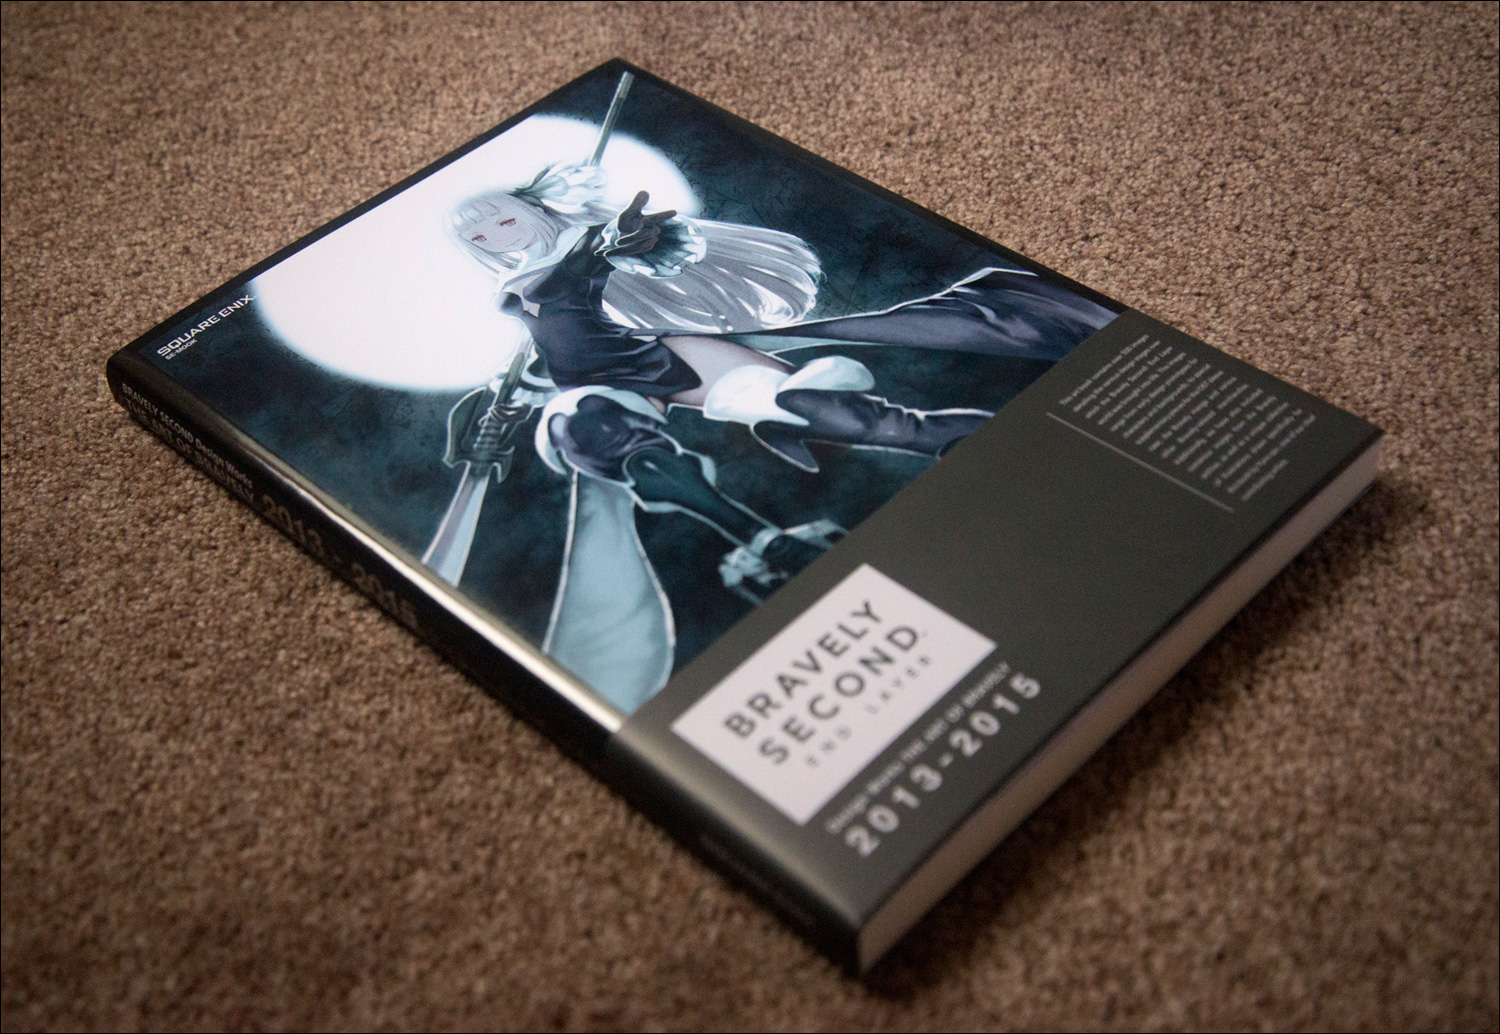 Bravely-Second-End-Layer-Deluxe-Collector's-Edition-Artbook